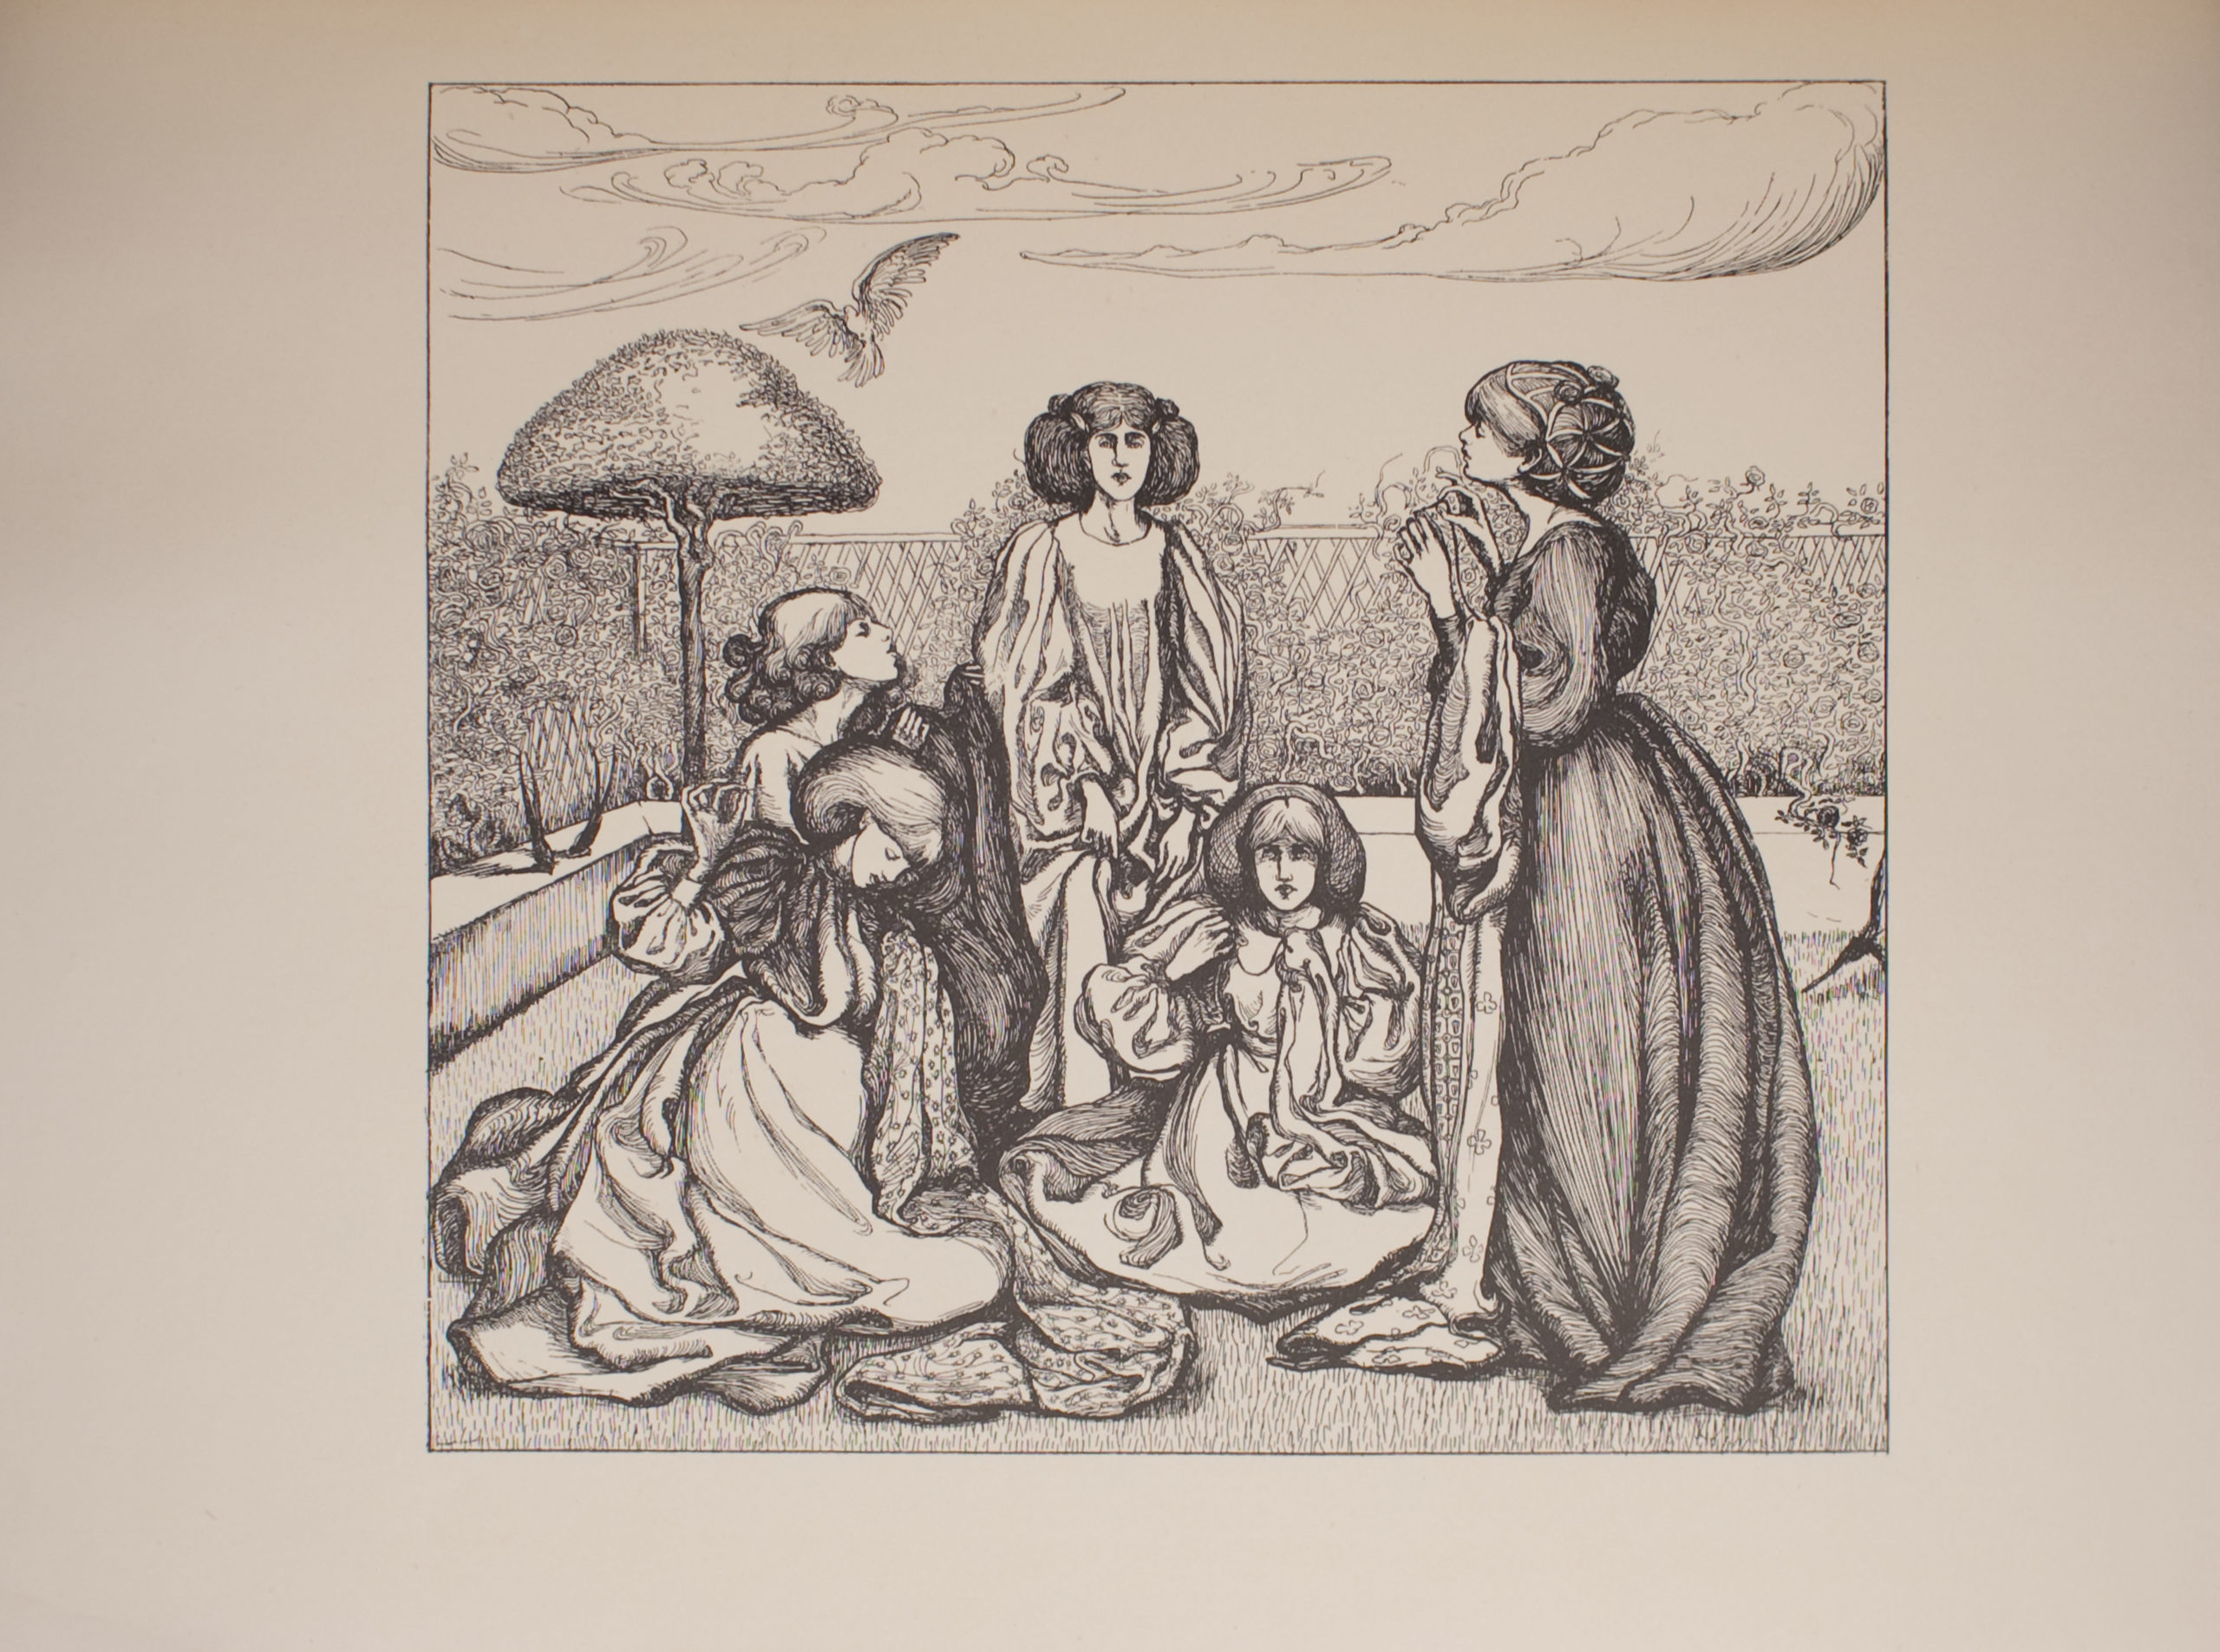 Image is of five women in a yard All of the women are wearing dresses with a high neckline and long sleeves They all have voluminous hair The woman in the centre is standing and shown in full profile She is holding her skirt below the waist Her hair is parted down the middle The woman to her right is sitting on the ground she is also shown in full profile Her right hand is raised halfway between her face and her body her left hand is also raised though it is hidden under an article of clothing Her hair is also parted down the middle Shadows fall slightly over her eyes Beside her is a woman standing in profile Her dress is dark with a patterned petticoat Her dark hair is done up and secured by a snood She is lifting her head slightly Her left and right hands are raised up toward her chest in her right hand is a sewing needle Across from her are two kneeling women shown in profile The woman in the foreground has shoulder-length hair and has her head tilted toward the ground Her right hand is raised and has a sewing needle and thread in it Her left hand is clutching some patterned fabric on which she is stitching Behind her is a woman with curly hair with her head tilted upward She is holding a dark fabric in her hands In the background is a low wall and a trellis with roses growing on it There is a tree with a slender trunk and a triangular-shaped canopy in the left background of the image There is a bird flying above it The sky is cloudy The image is horizontally displayed